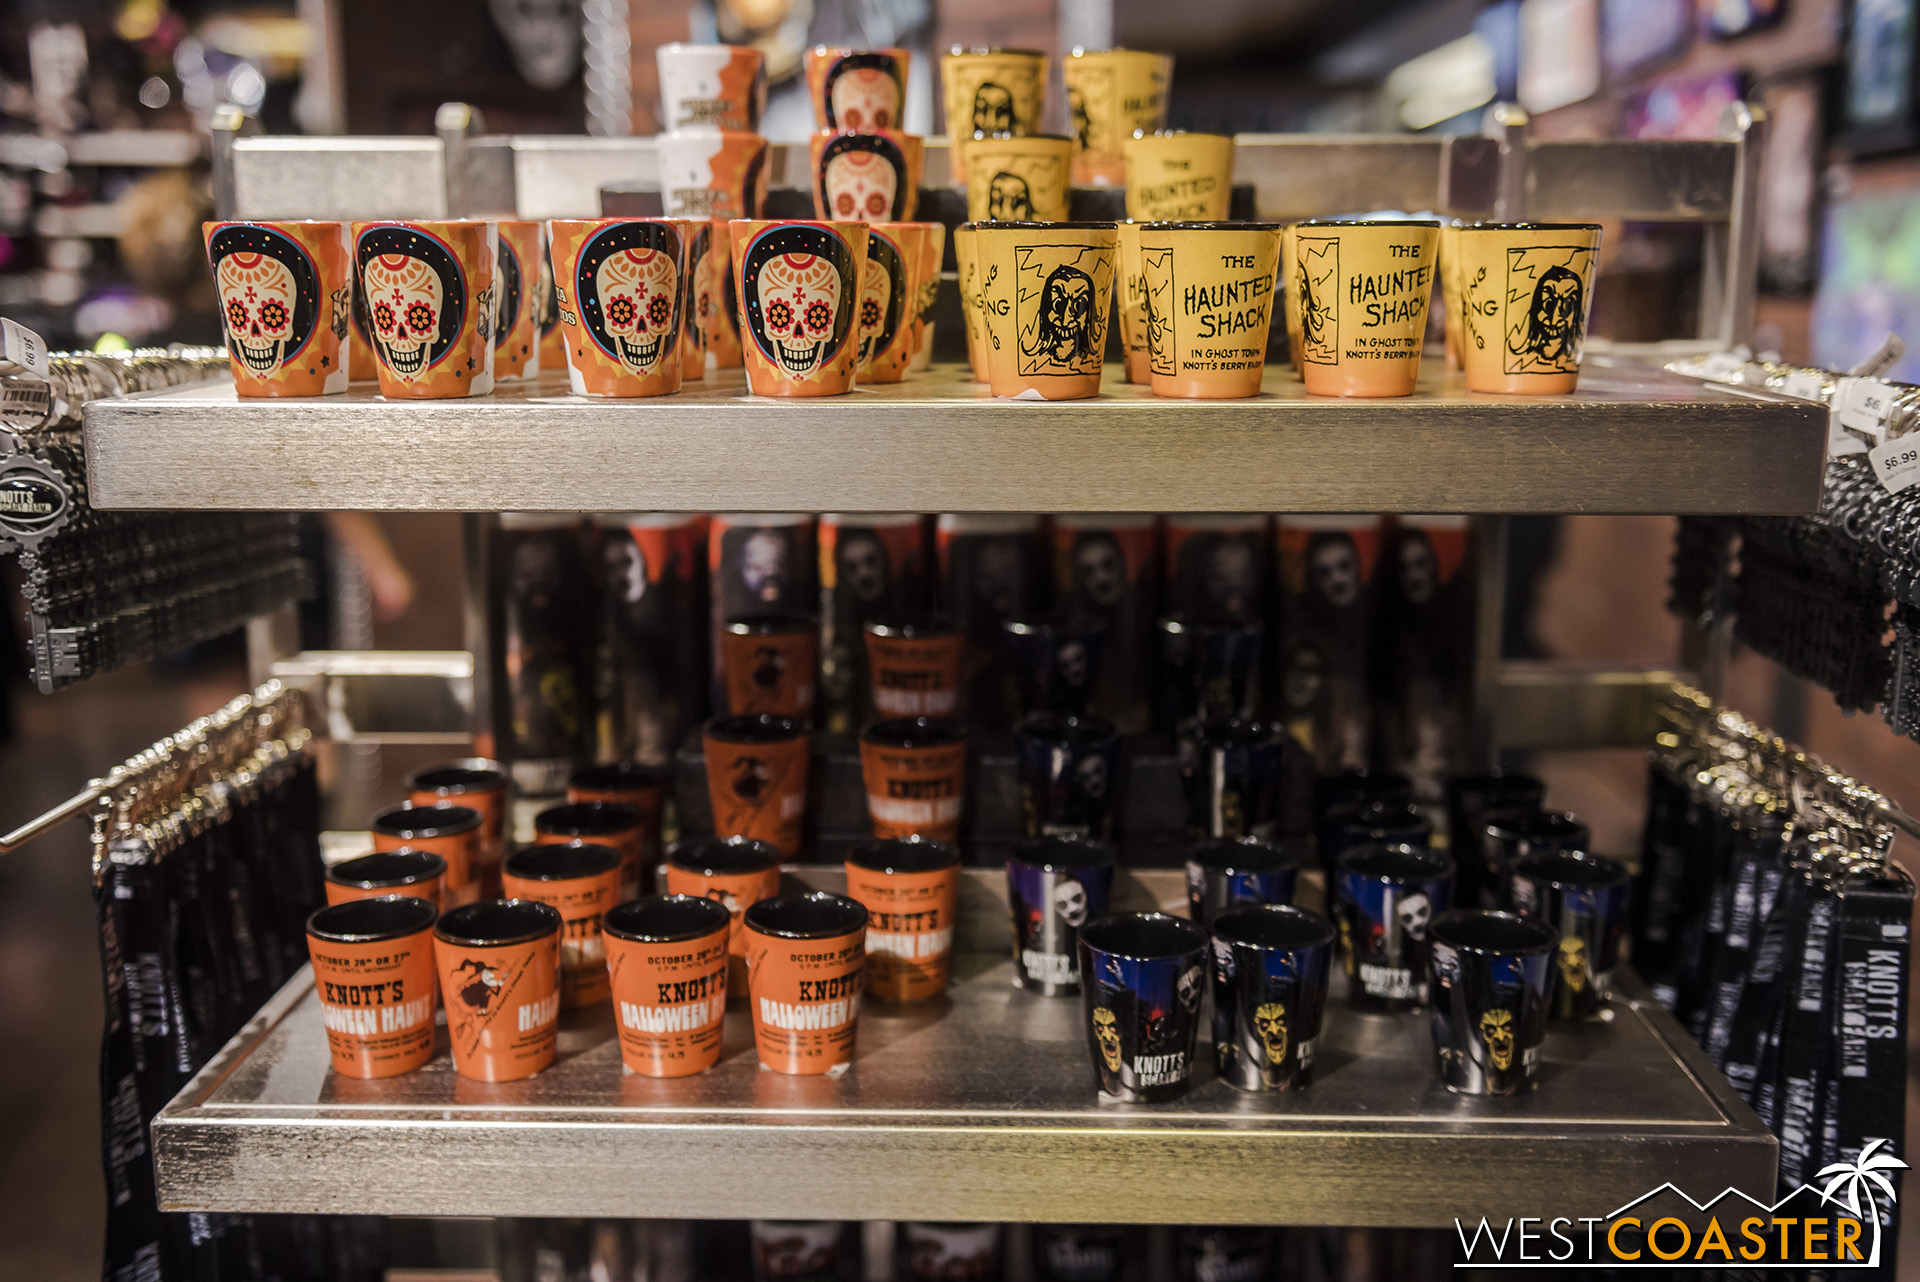 Buy a shot glass at Knott's, then double dip and use it at one of Dark Harbor's 287 bars!